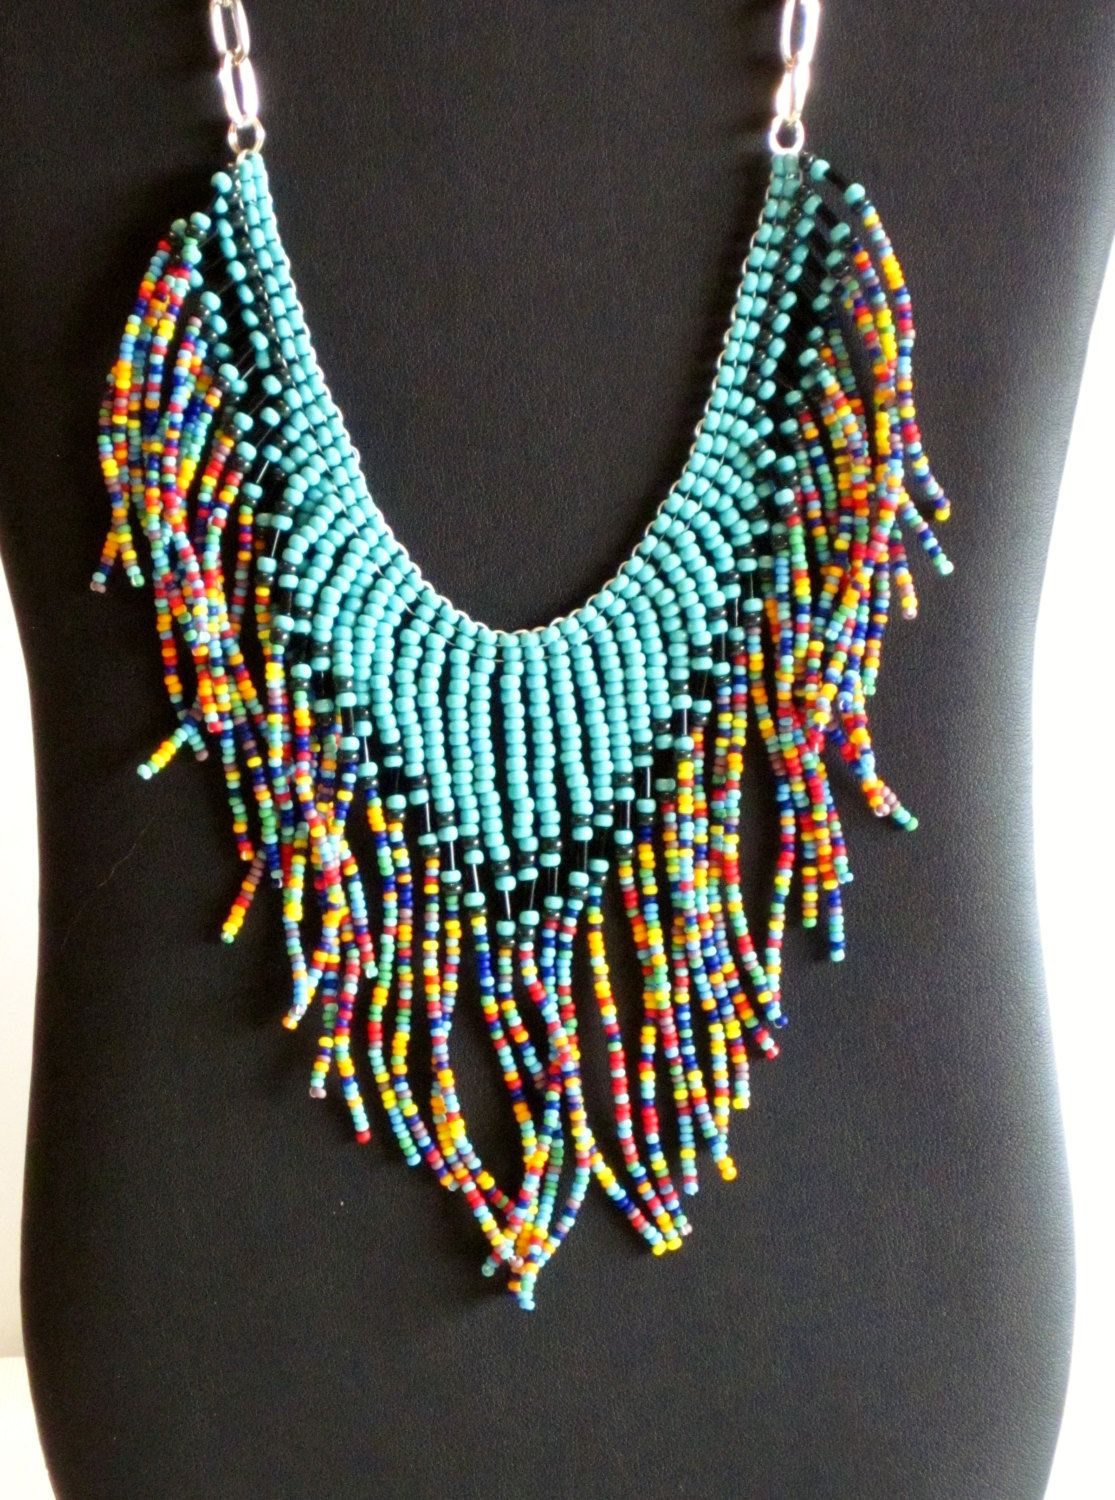 navajo native arrowhead jewelry necklace american products chic collares cowgirl style boho ethnic hippie indian turquoise